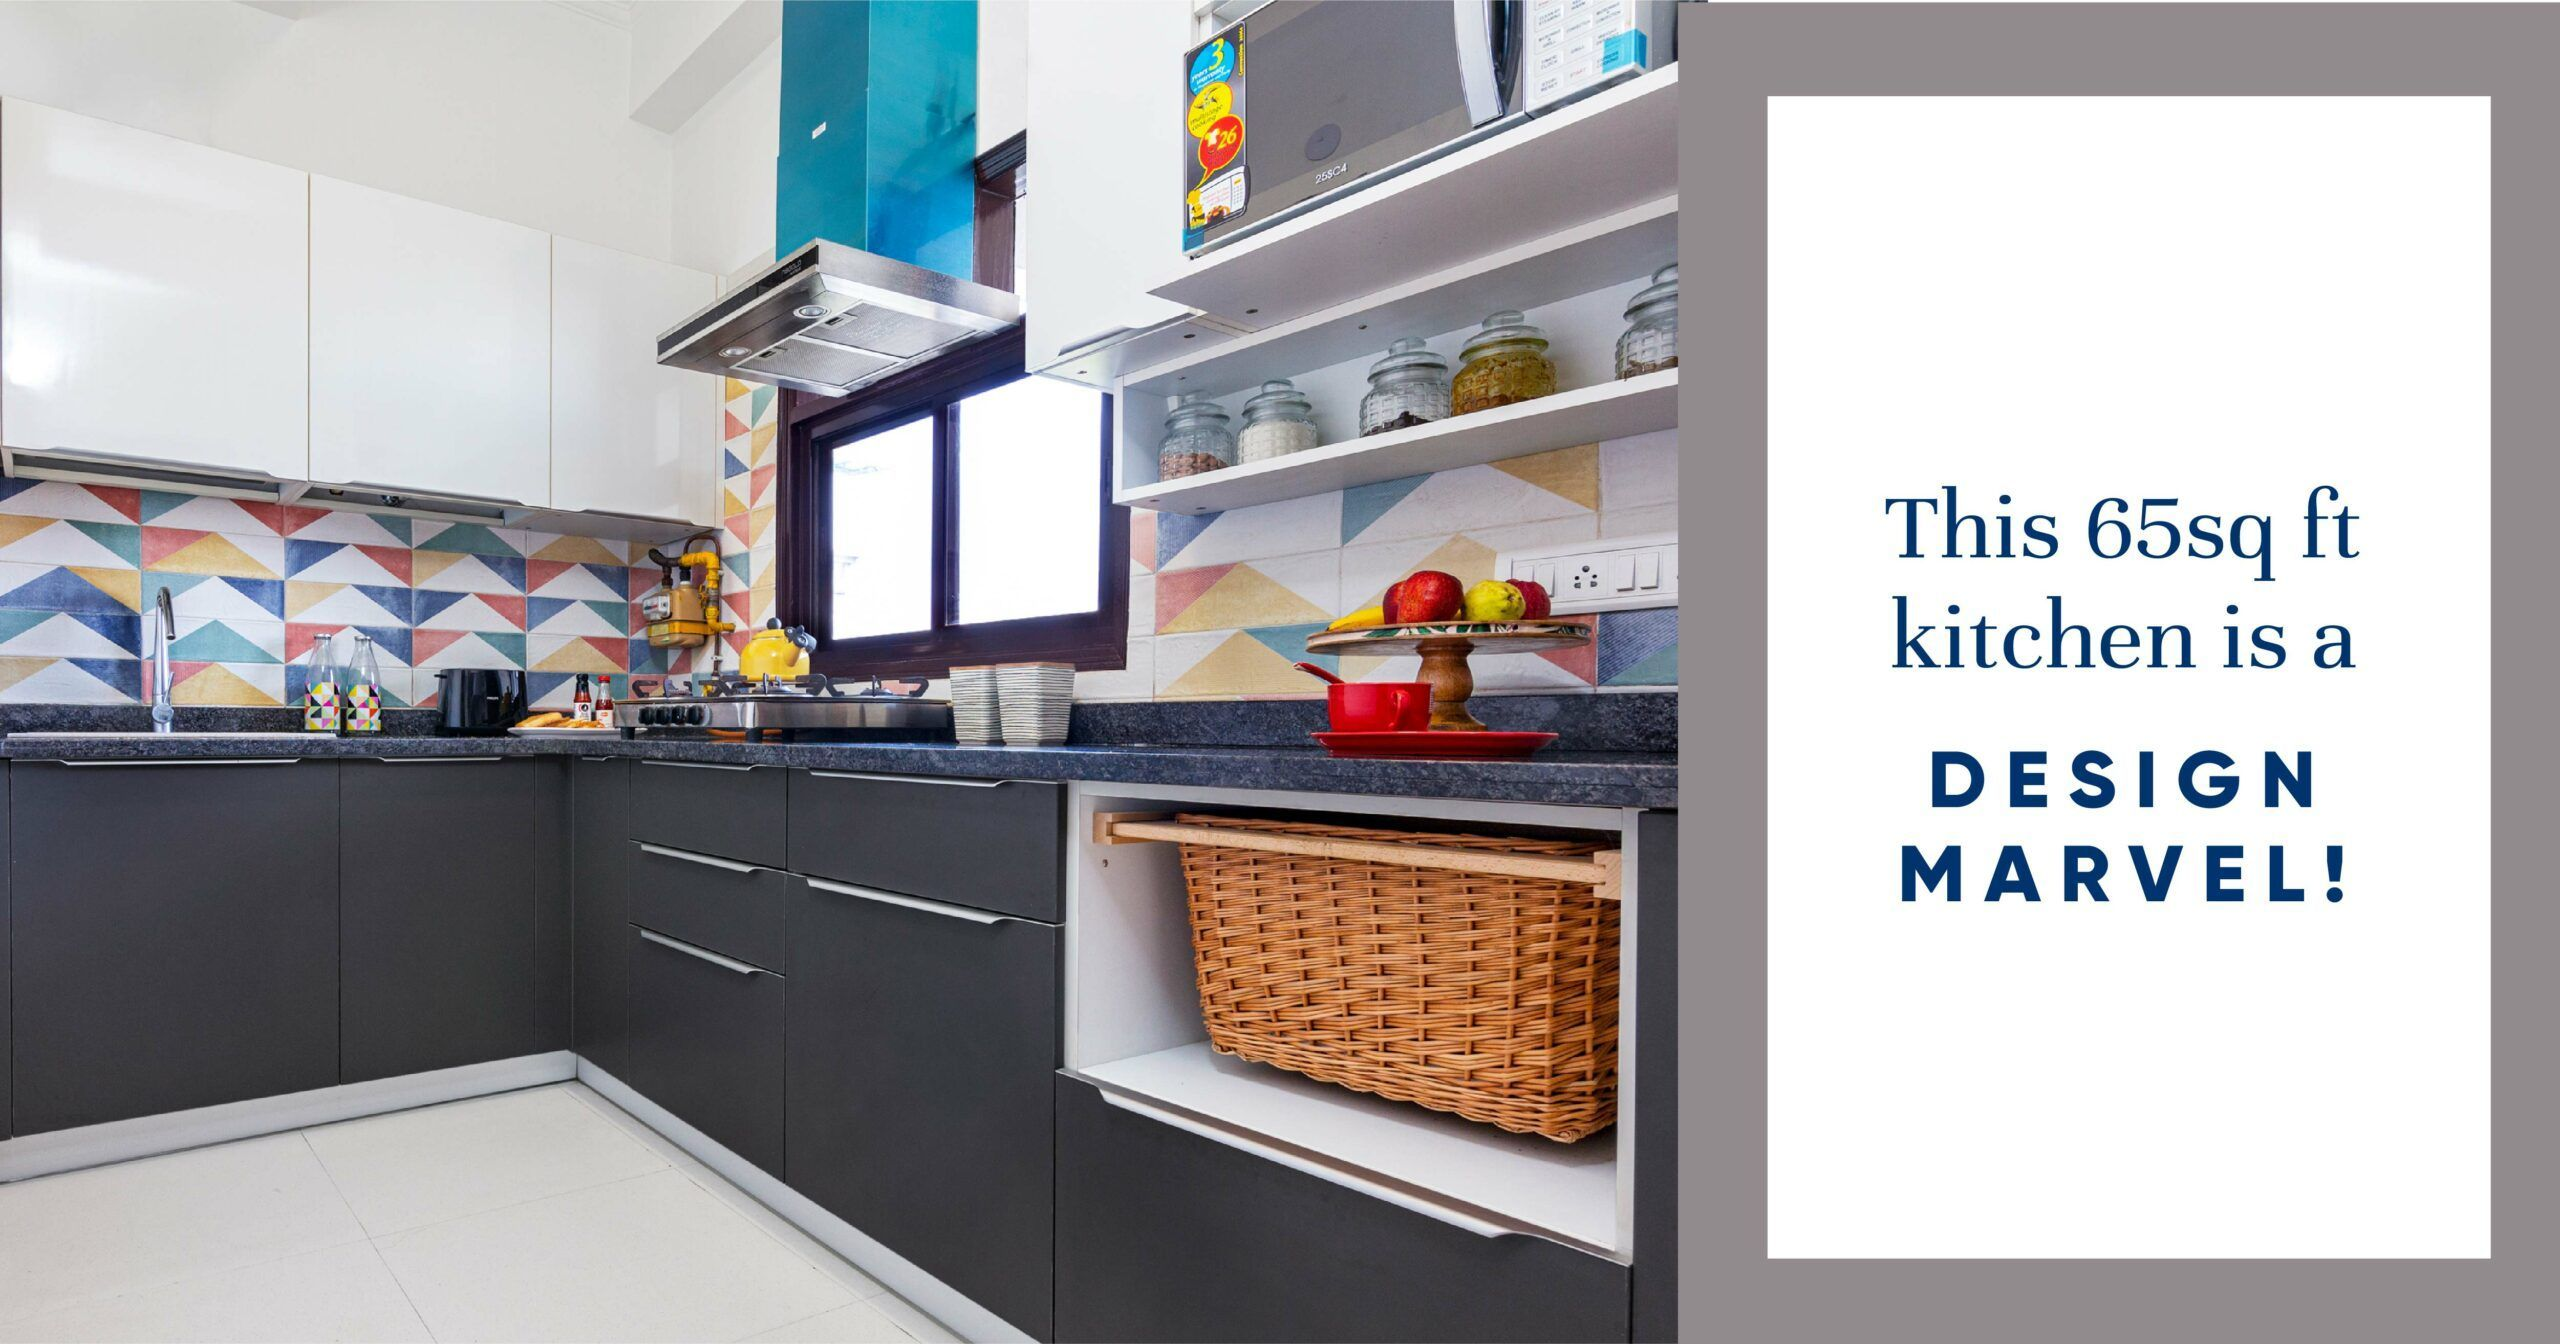 We Redesigned a Super Compact Dwarka Kitchen